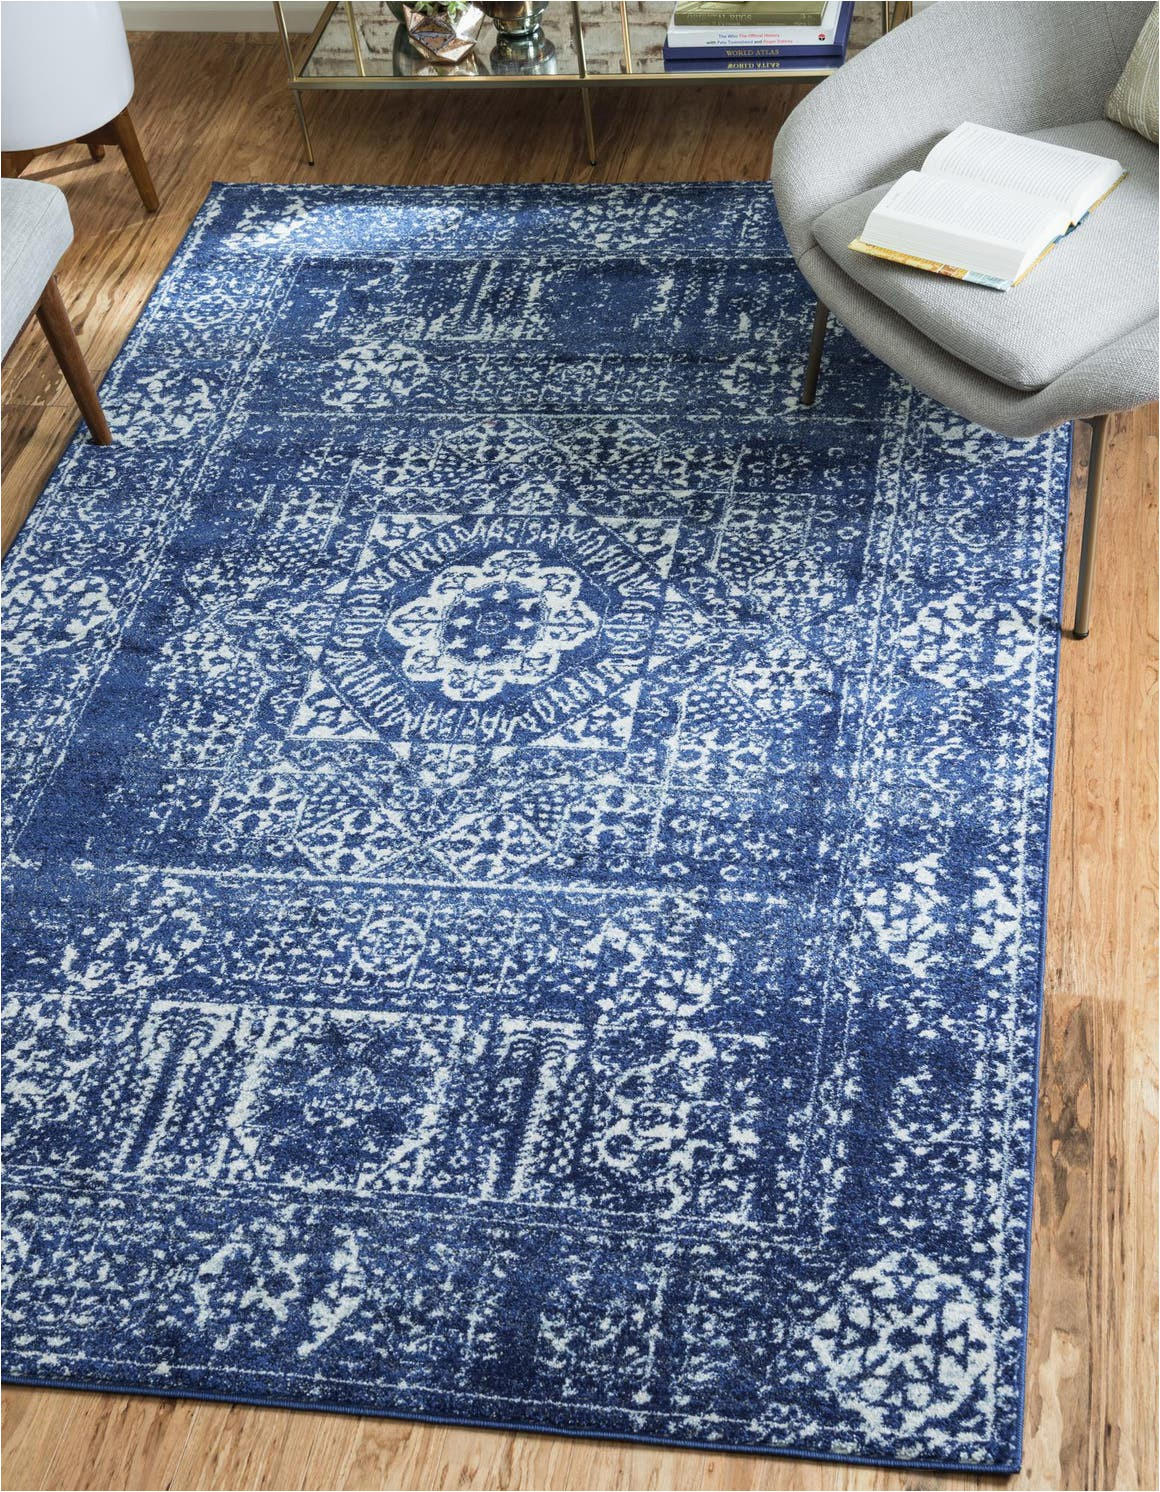 Royal Blue and Grey area Rug Royal Blue 5 X 8 Legacy Rug